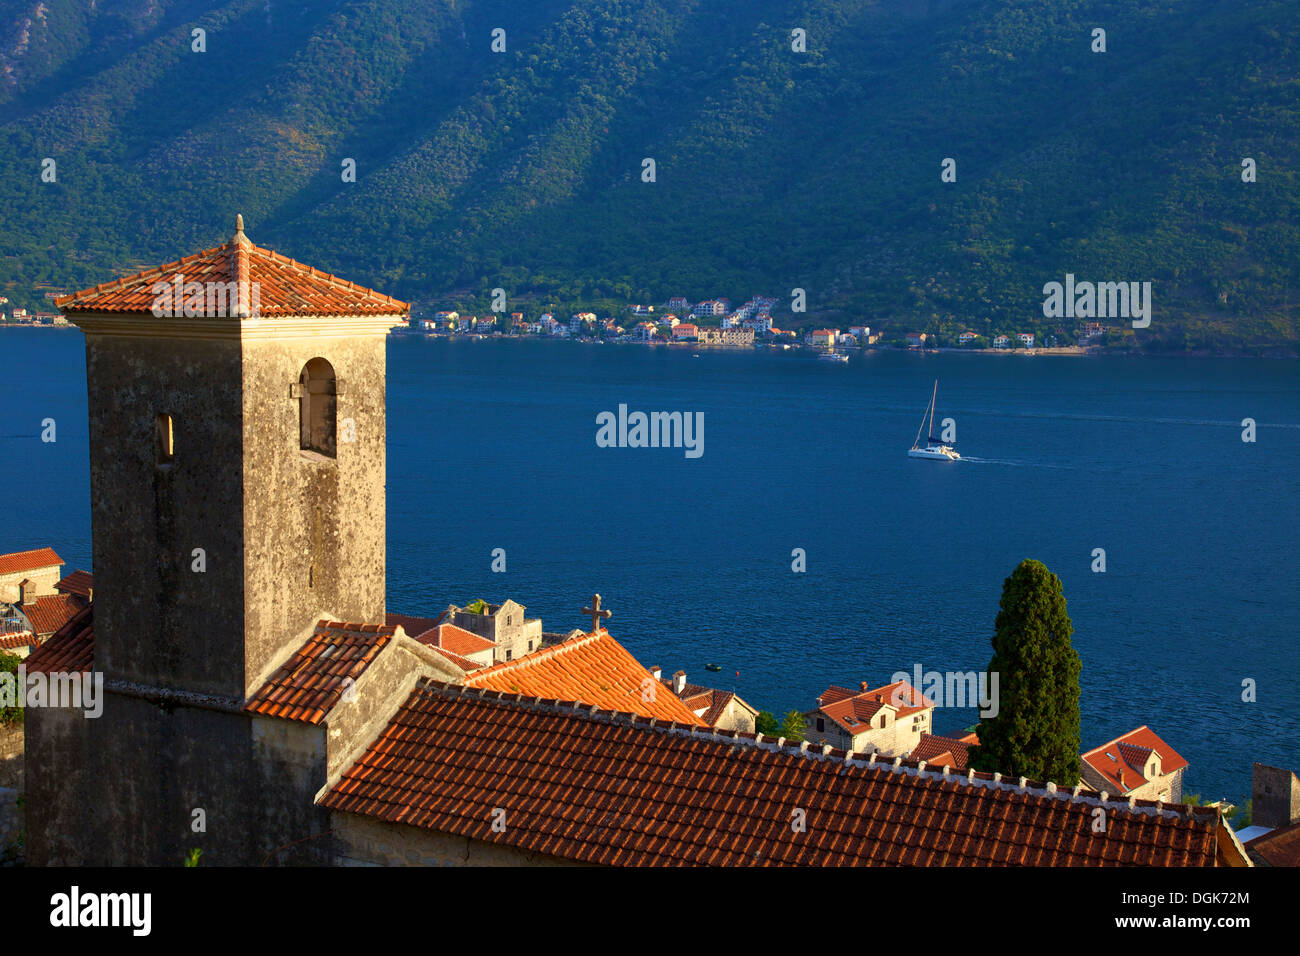 Kotor Bay Viewed From Perast, Montenegro - Stock Image